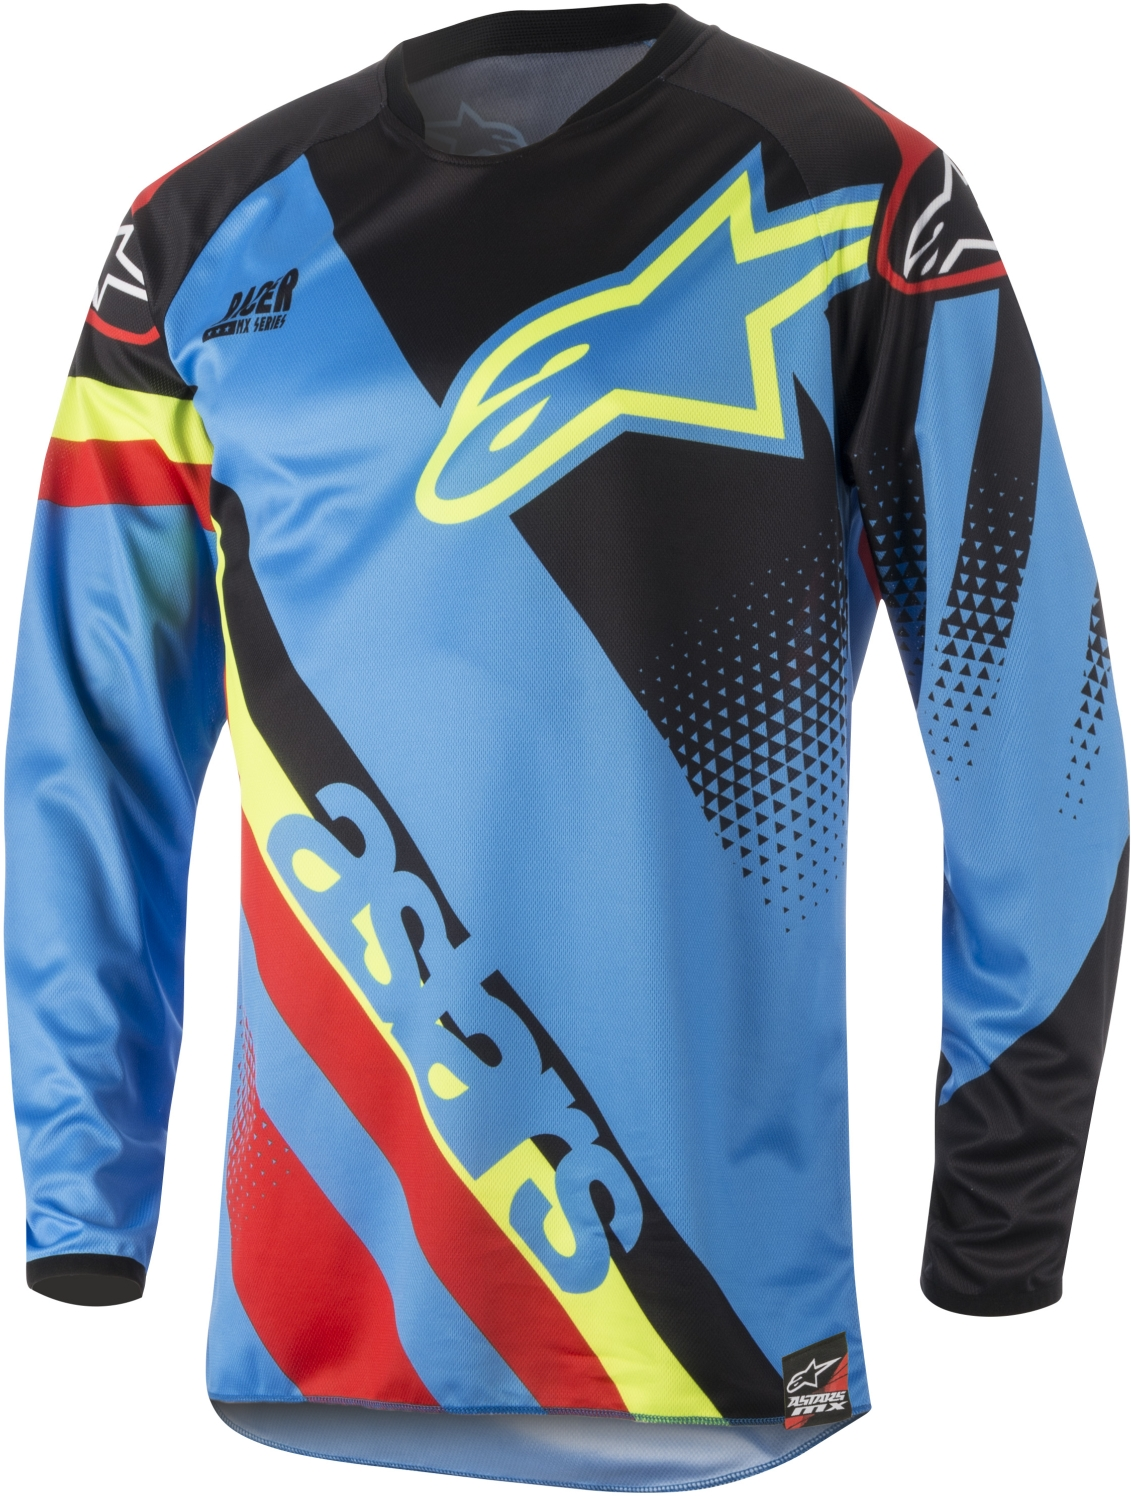 RACER SUPERMATIC JERSEY